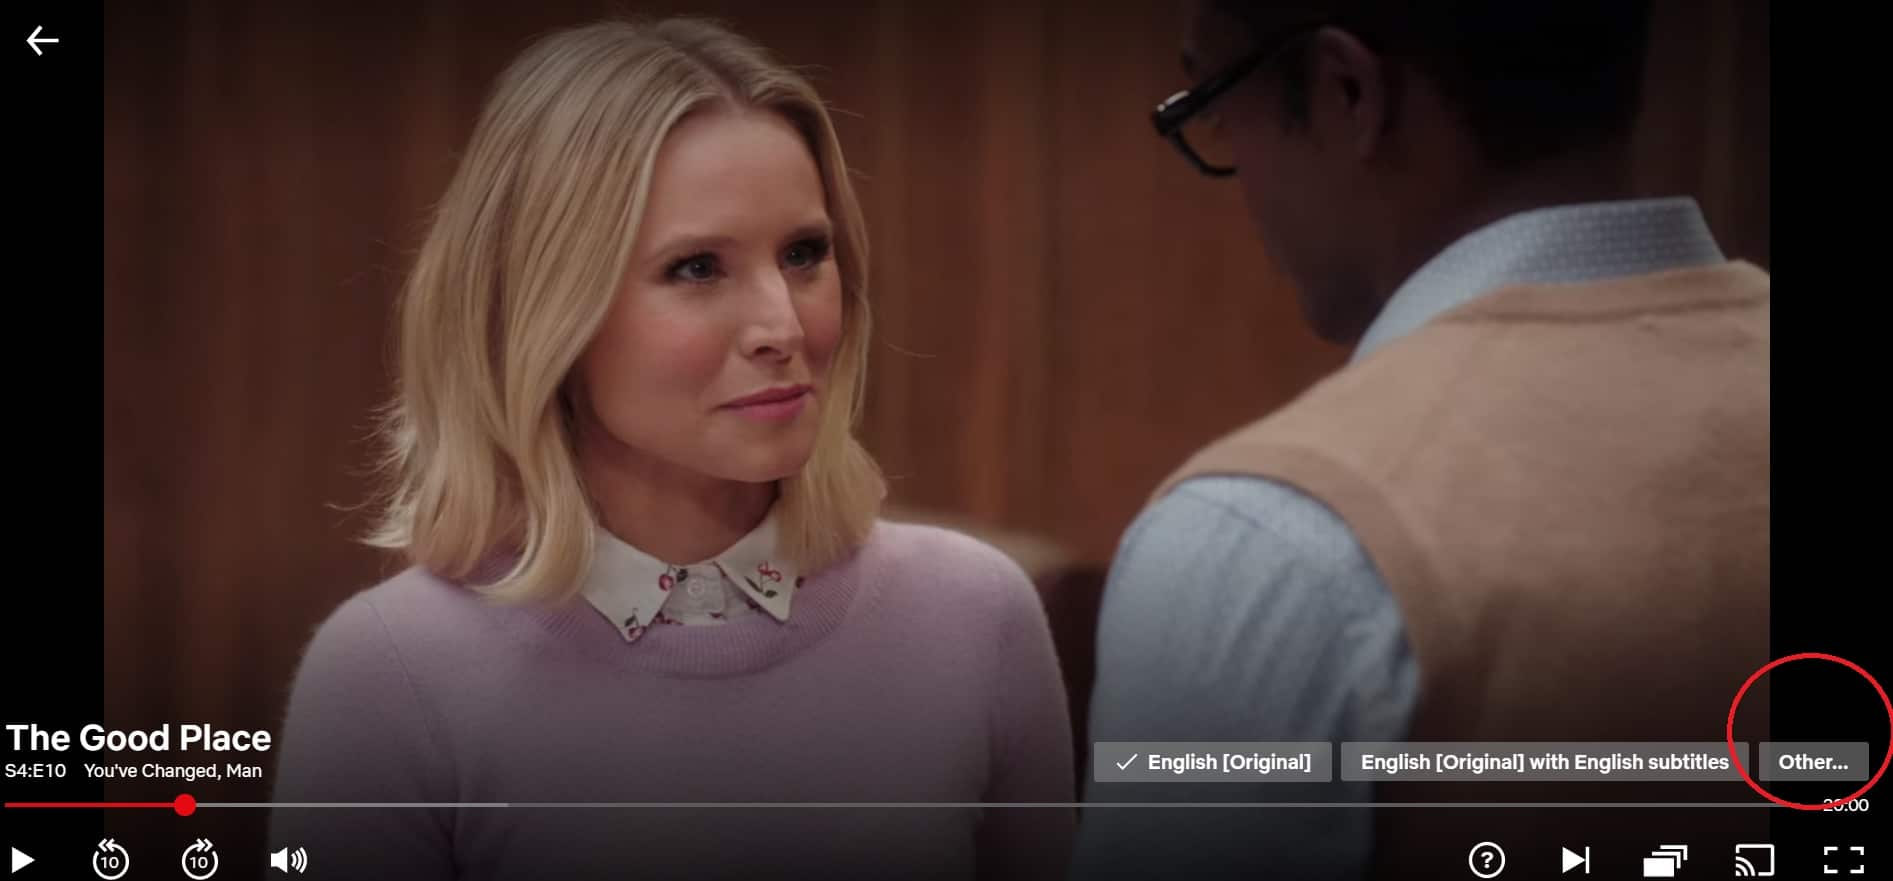 How To Turn Subtitles Off On Netflix